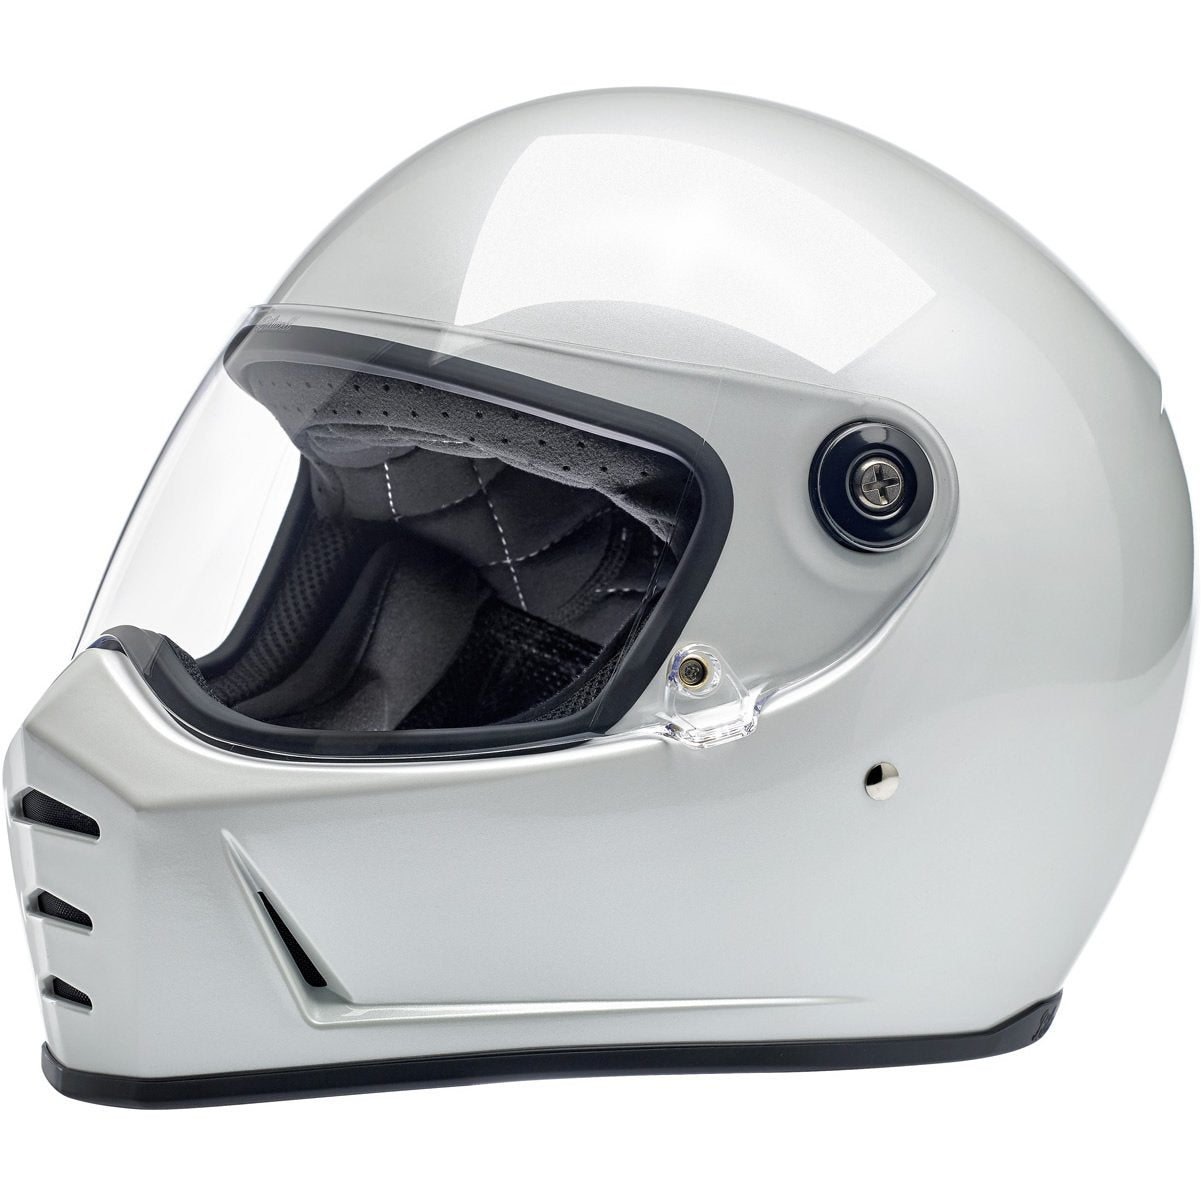 Biltwell Lane Splitter Helmet Metallic Pearl White